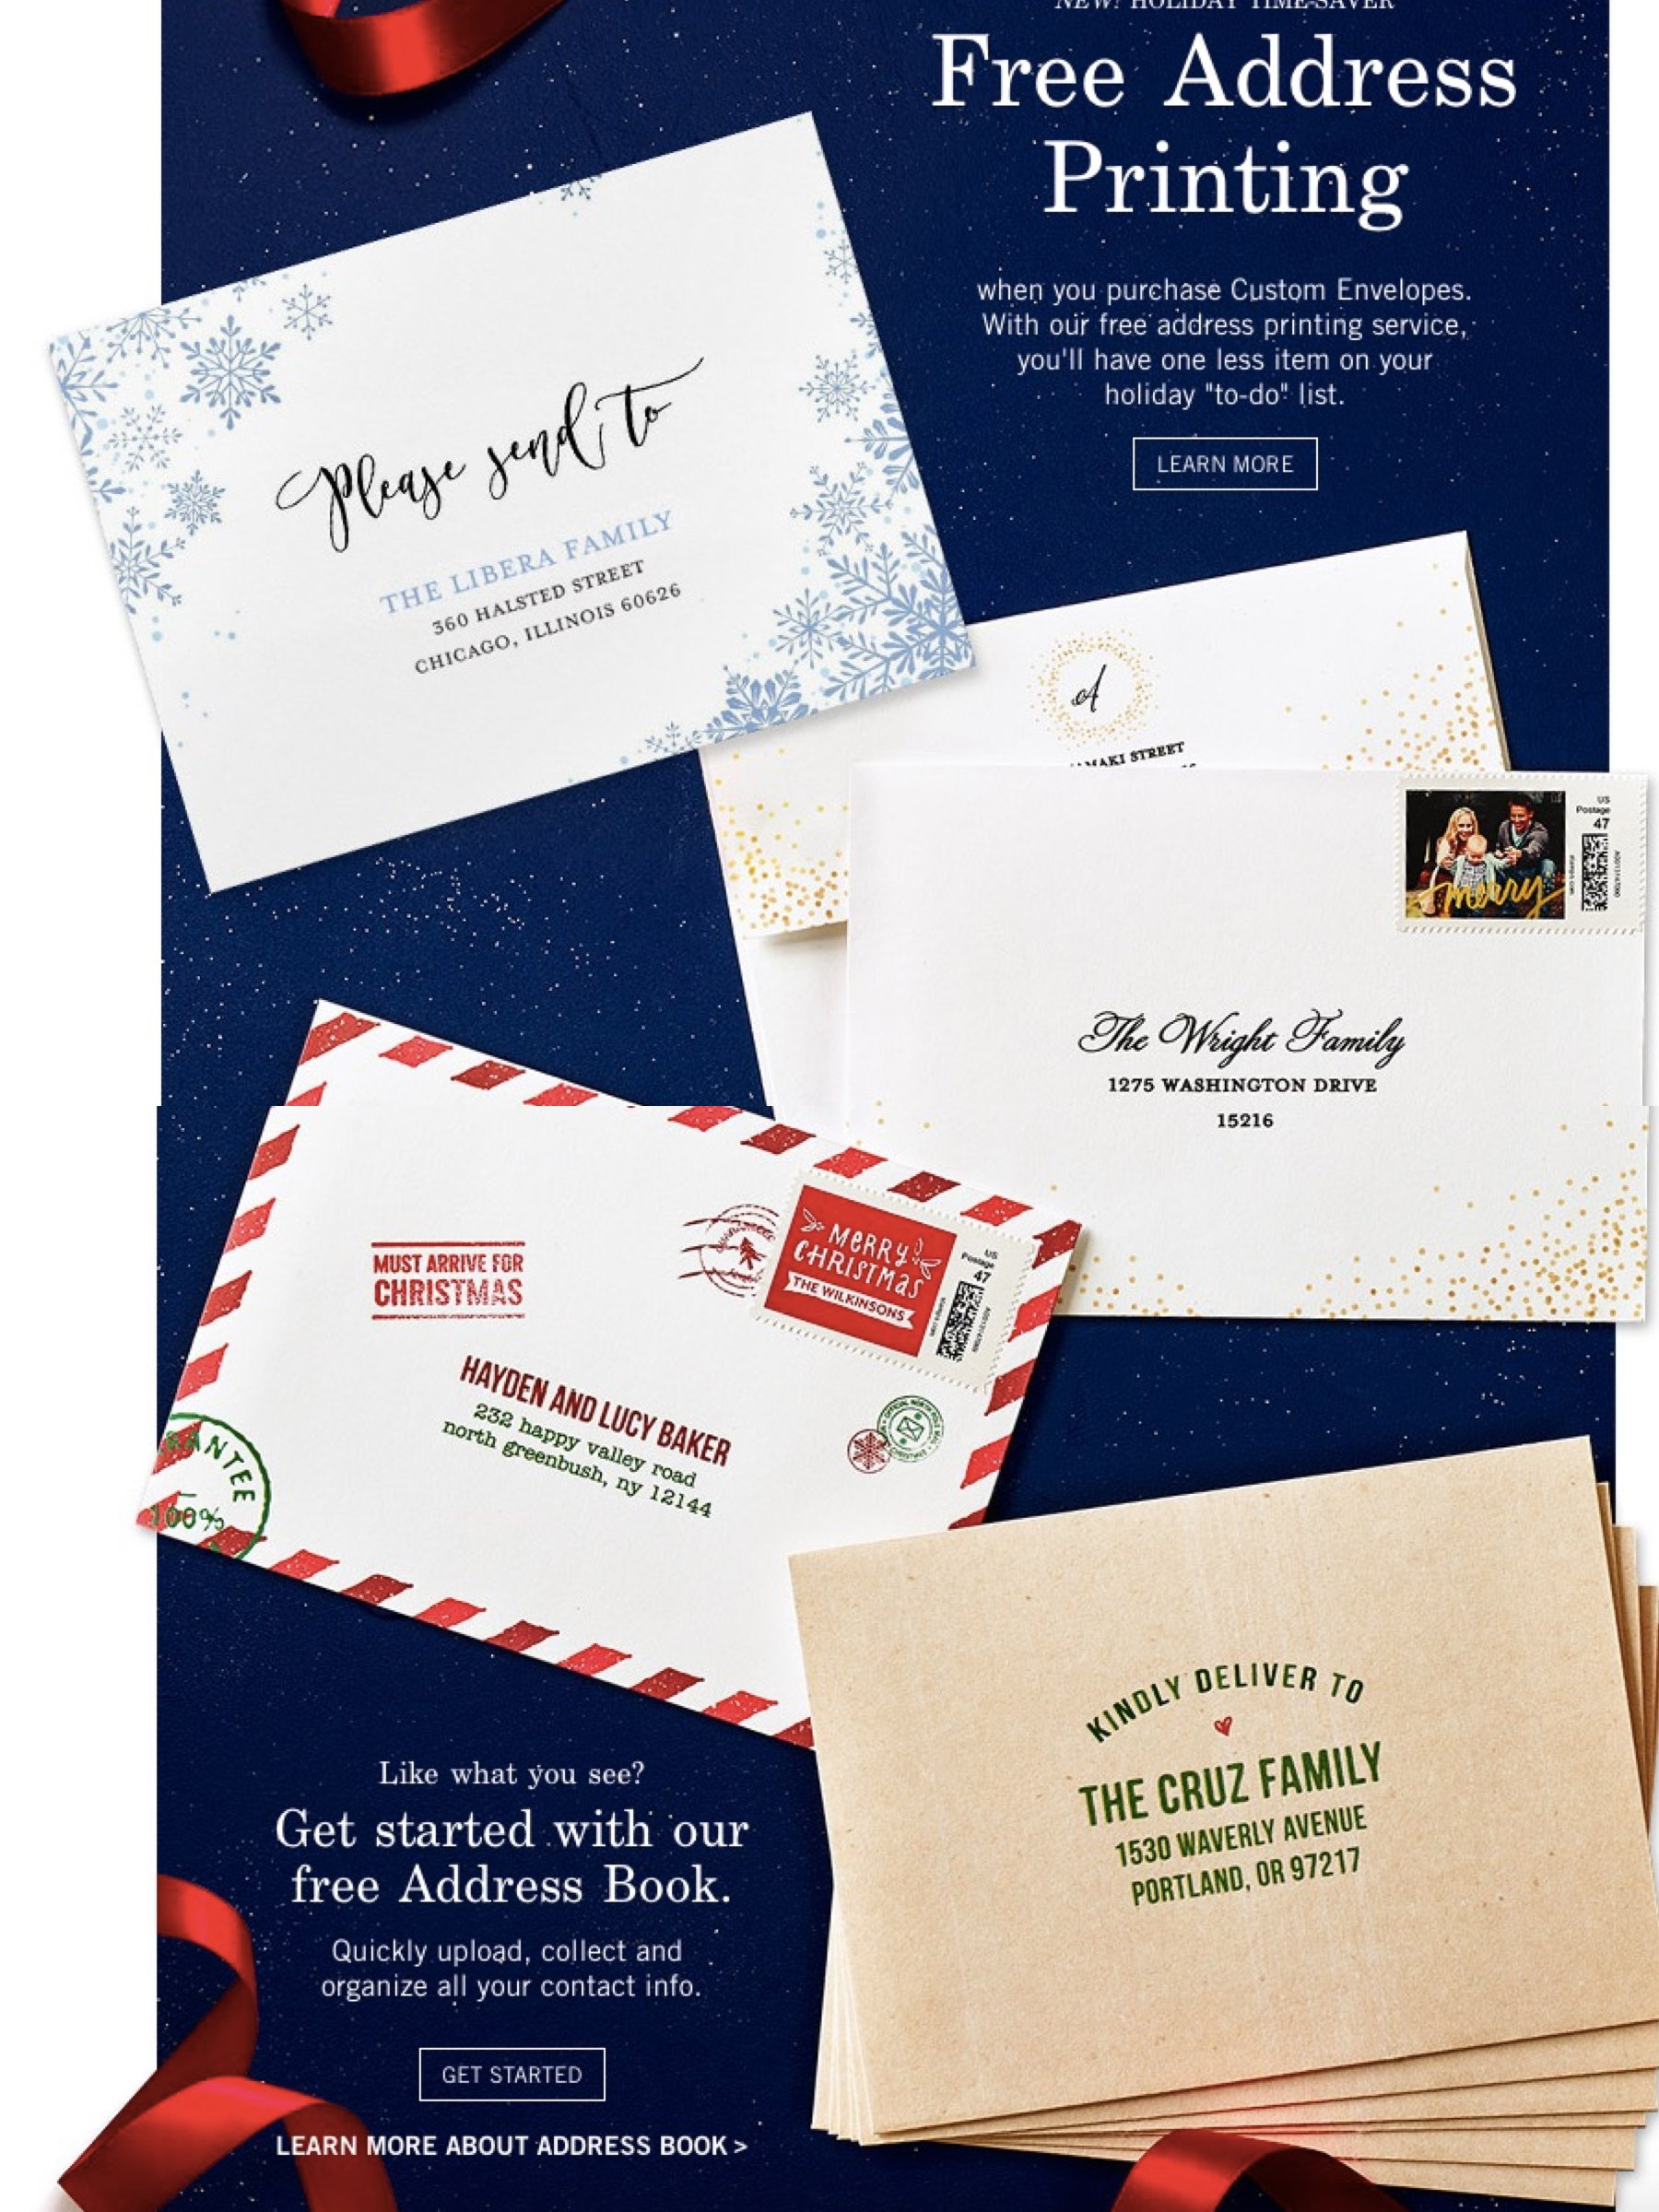 Free Address Printing for Holiday Cards